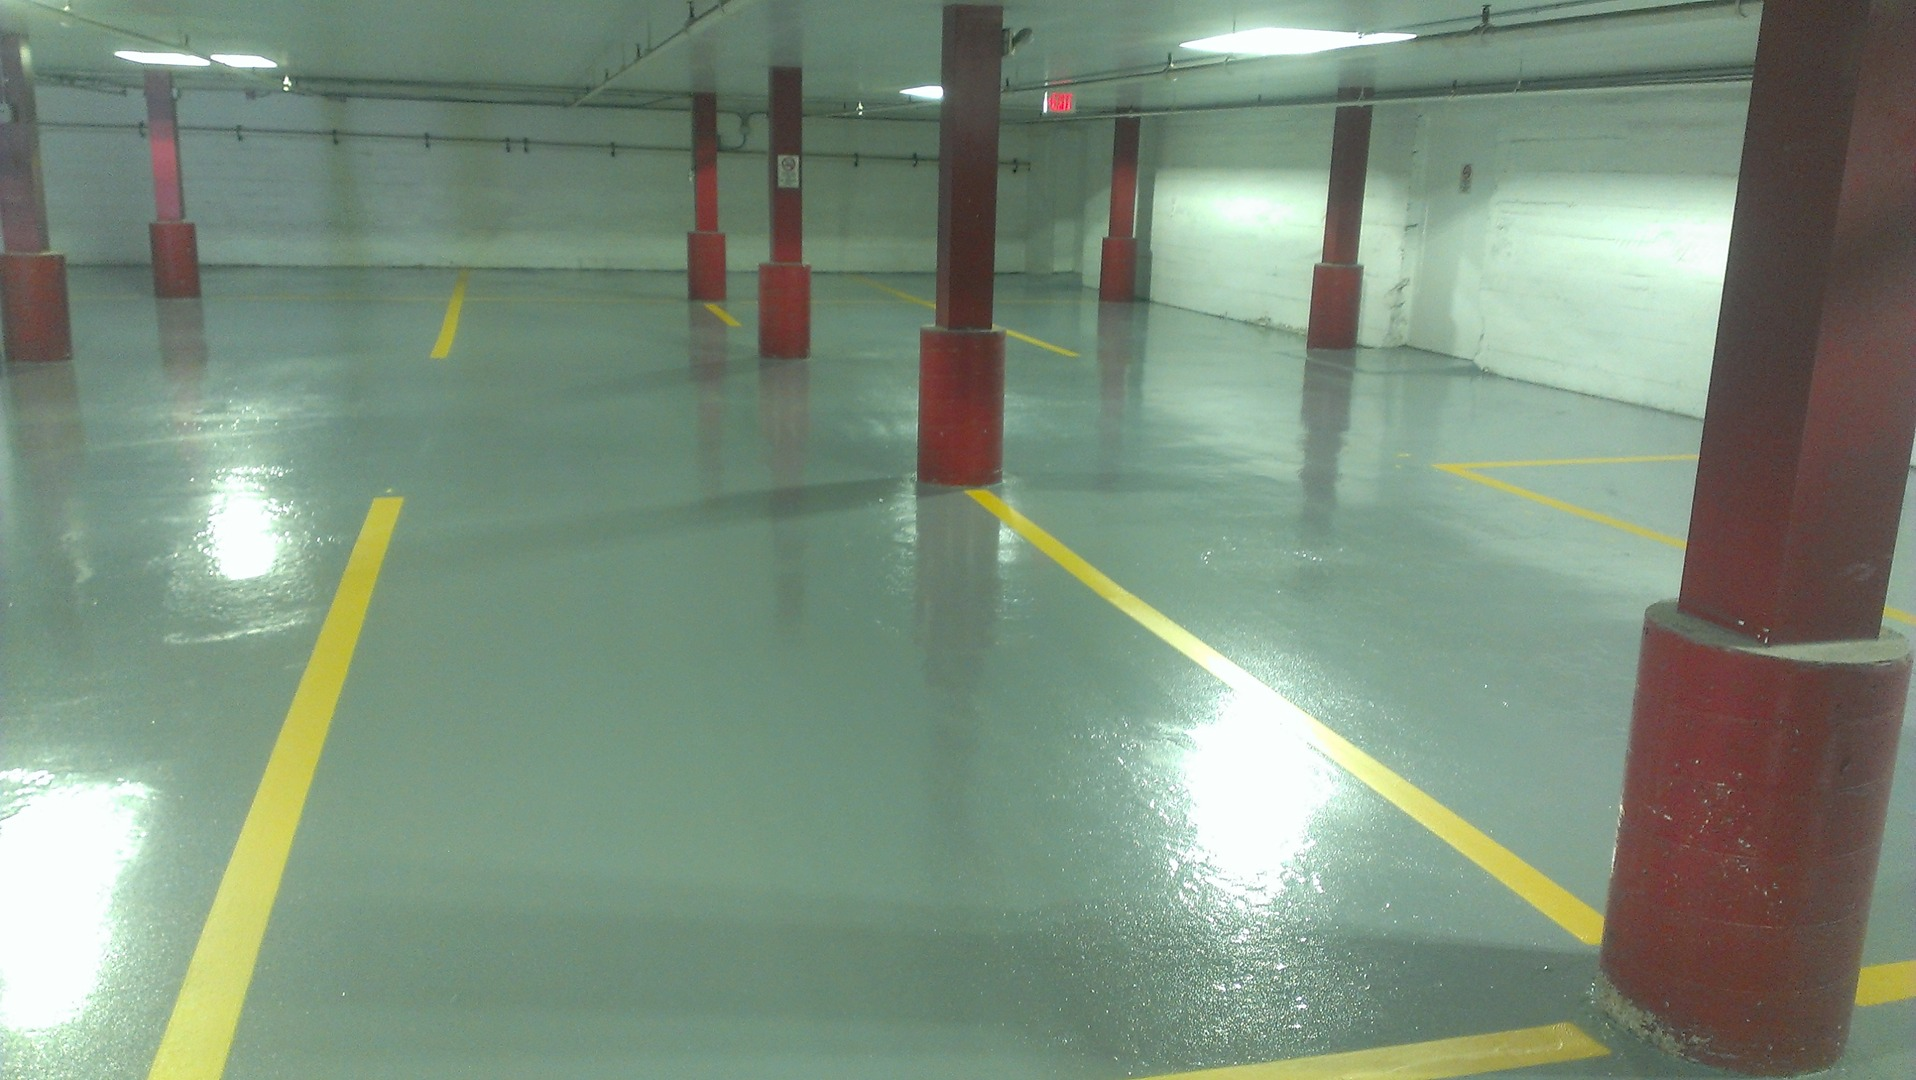 Epoxy Flooring, Concrete Repair And Stain - Showroom Floors ... on carports and more, carpet floors and more, lawn care and more, painting and more,